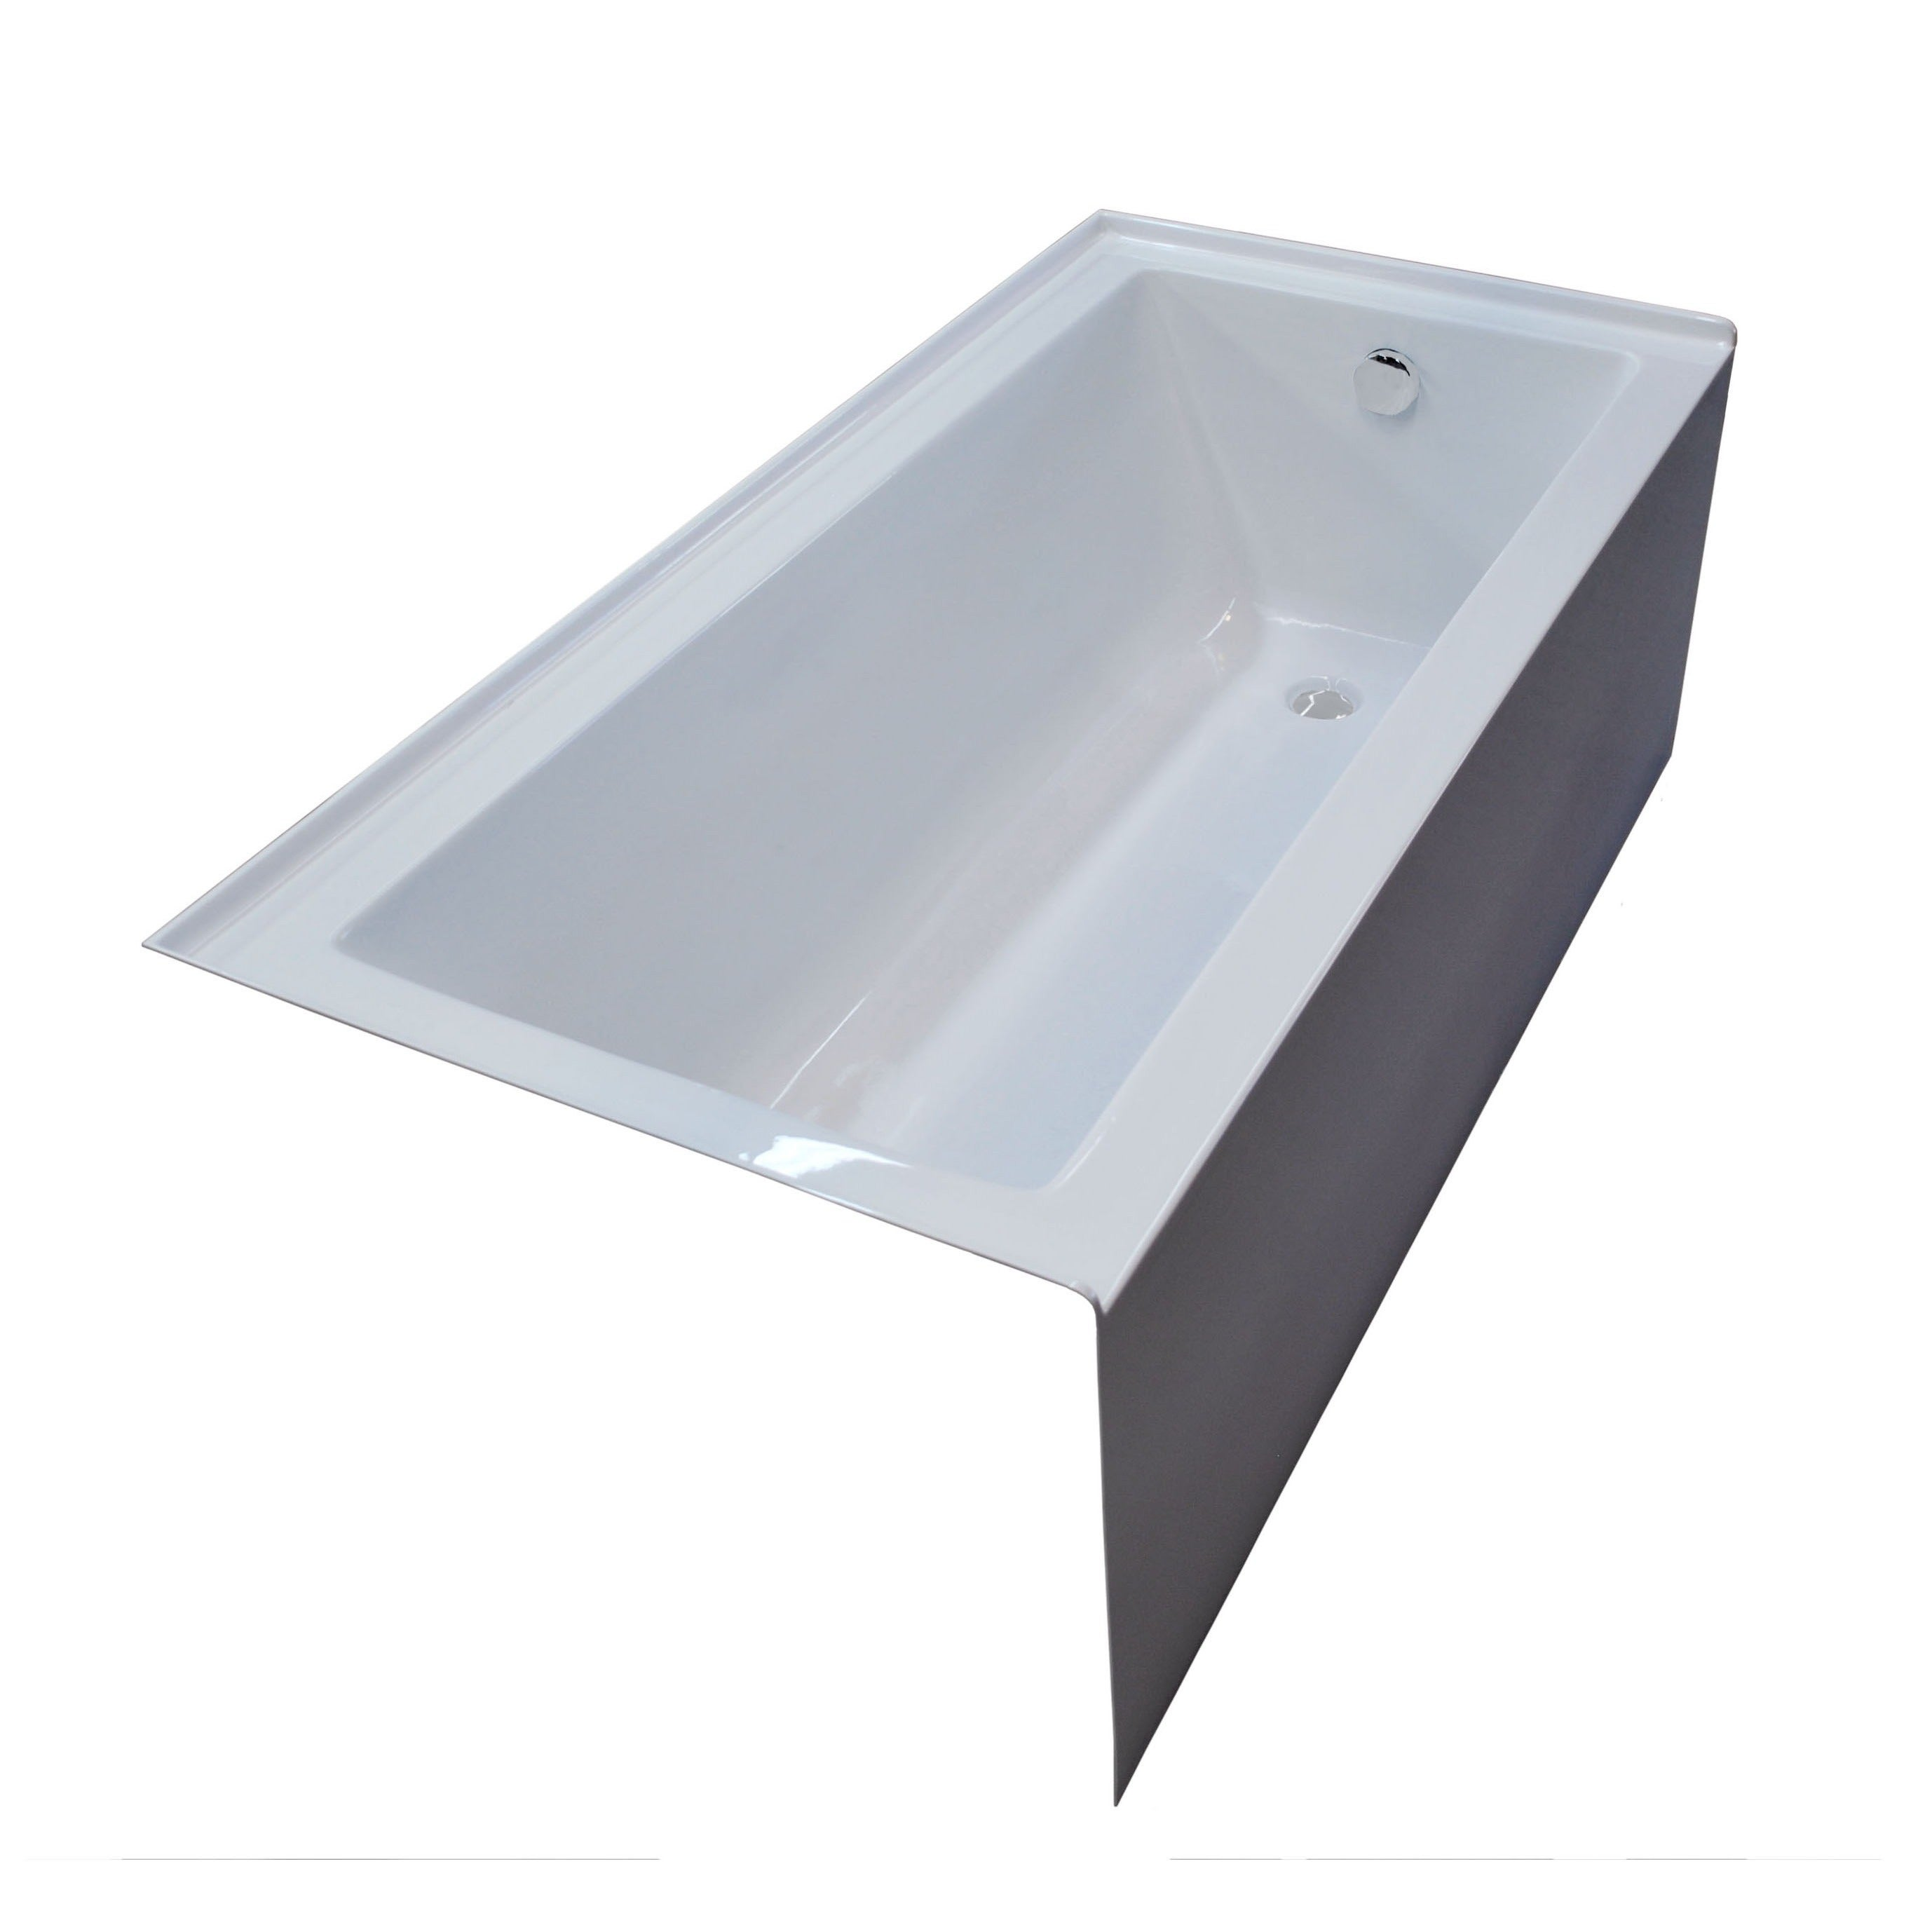 Shop Atlantis Whirlpools Soho 32 x 60 Front Skirted Tub in White ...